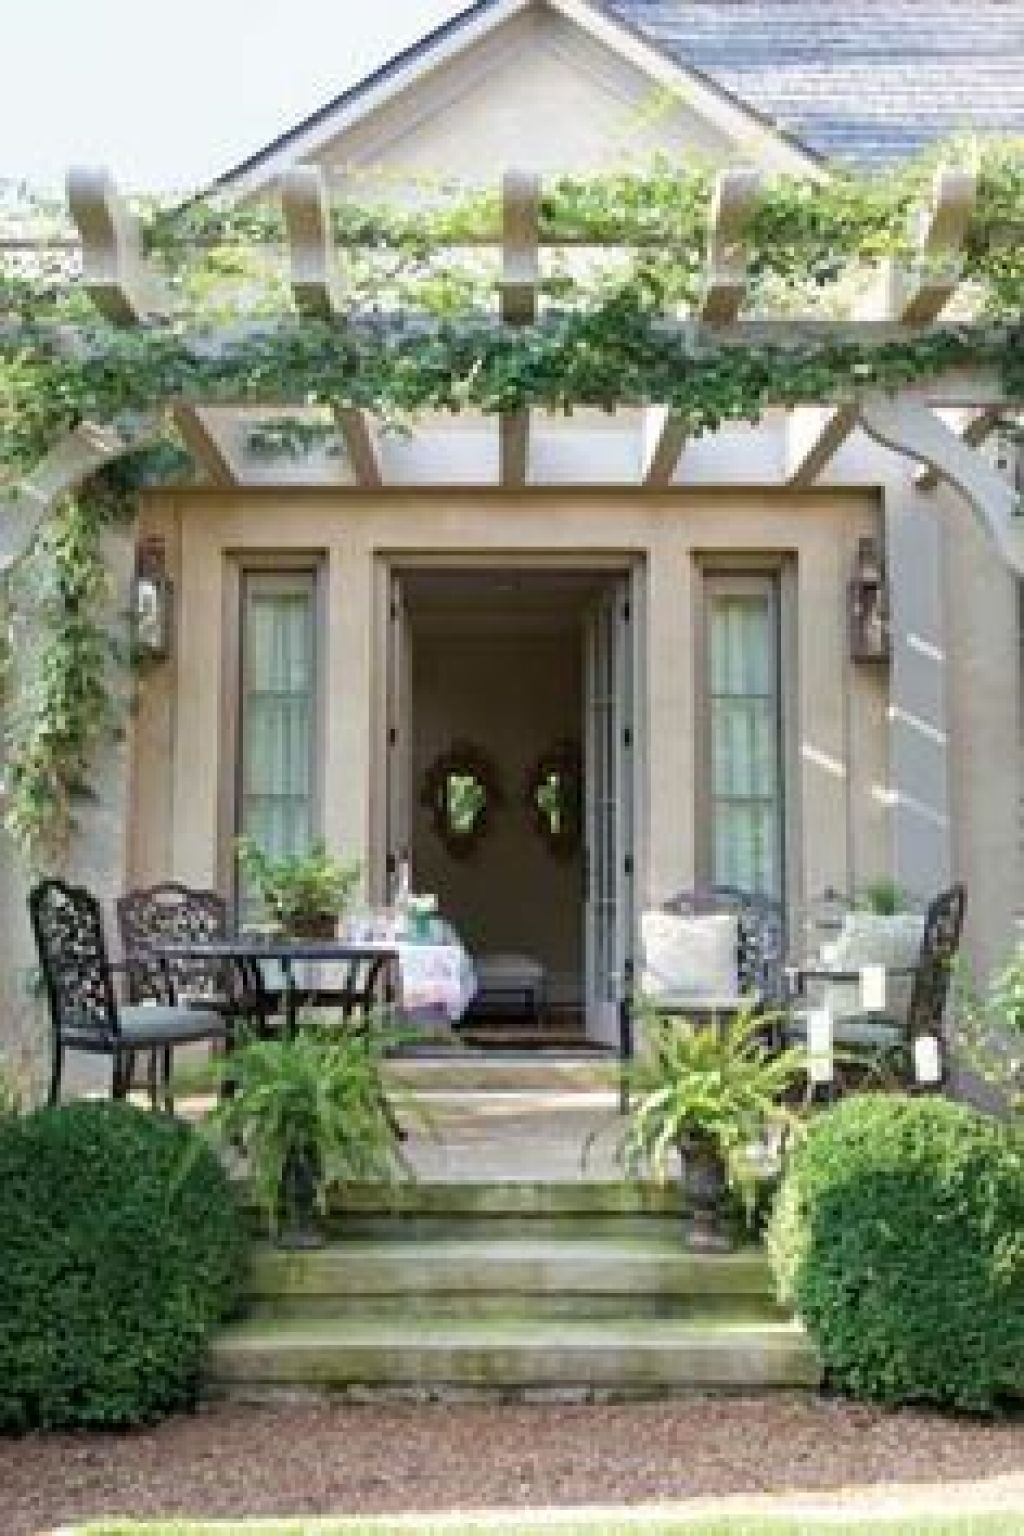 1000 ideas about front porch pergola on pinterest pergolas for Small outdoor porch ideas